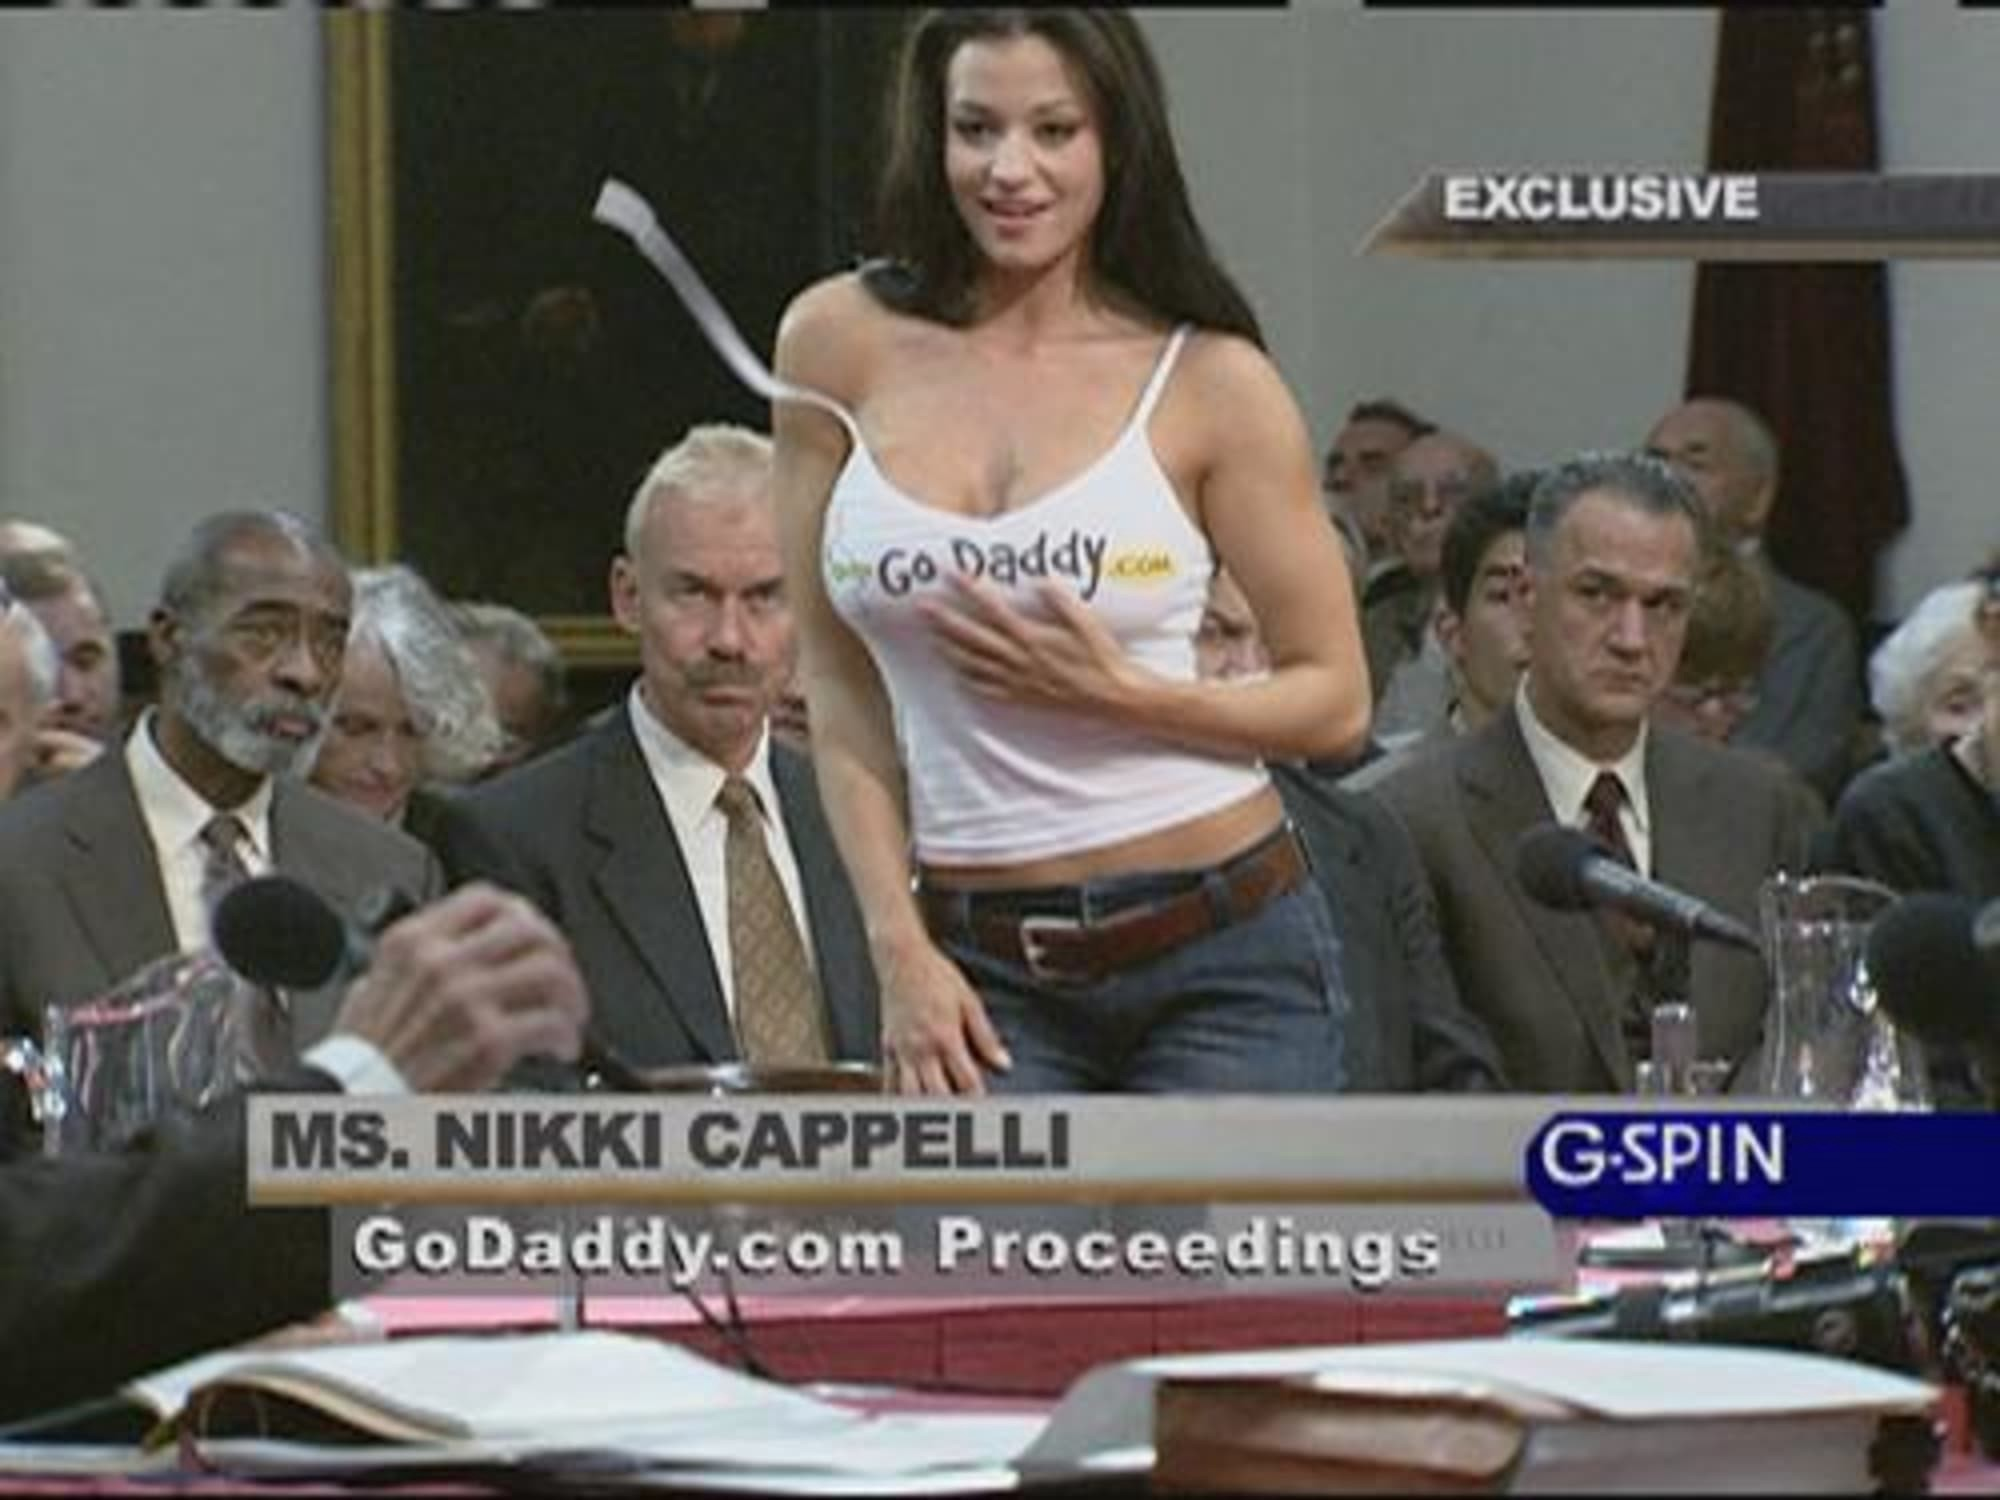 Still from a commercial, featuring a woman with cropped tank top with GoDaddy logo, surrounded by men in a courtroom setting.